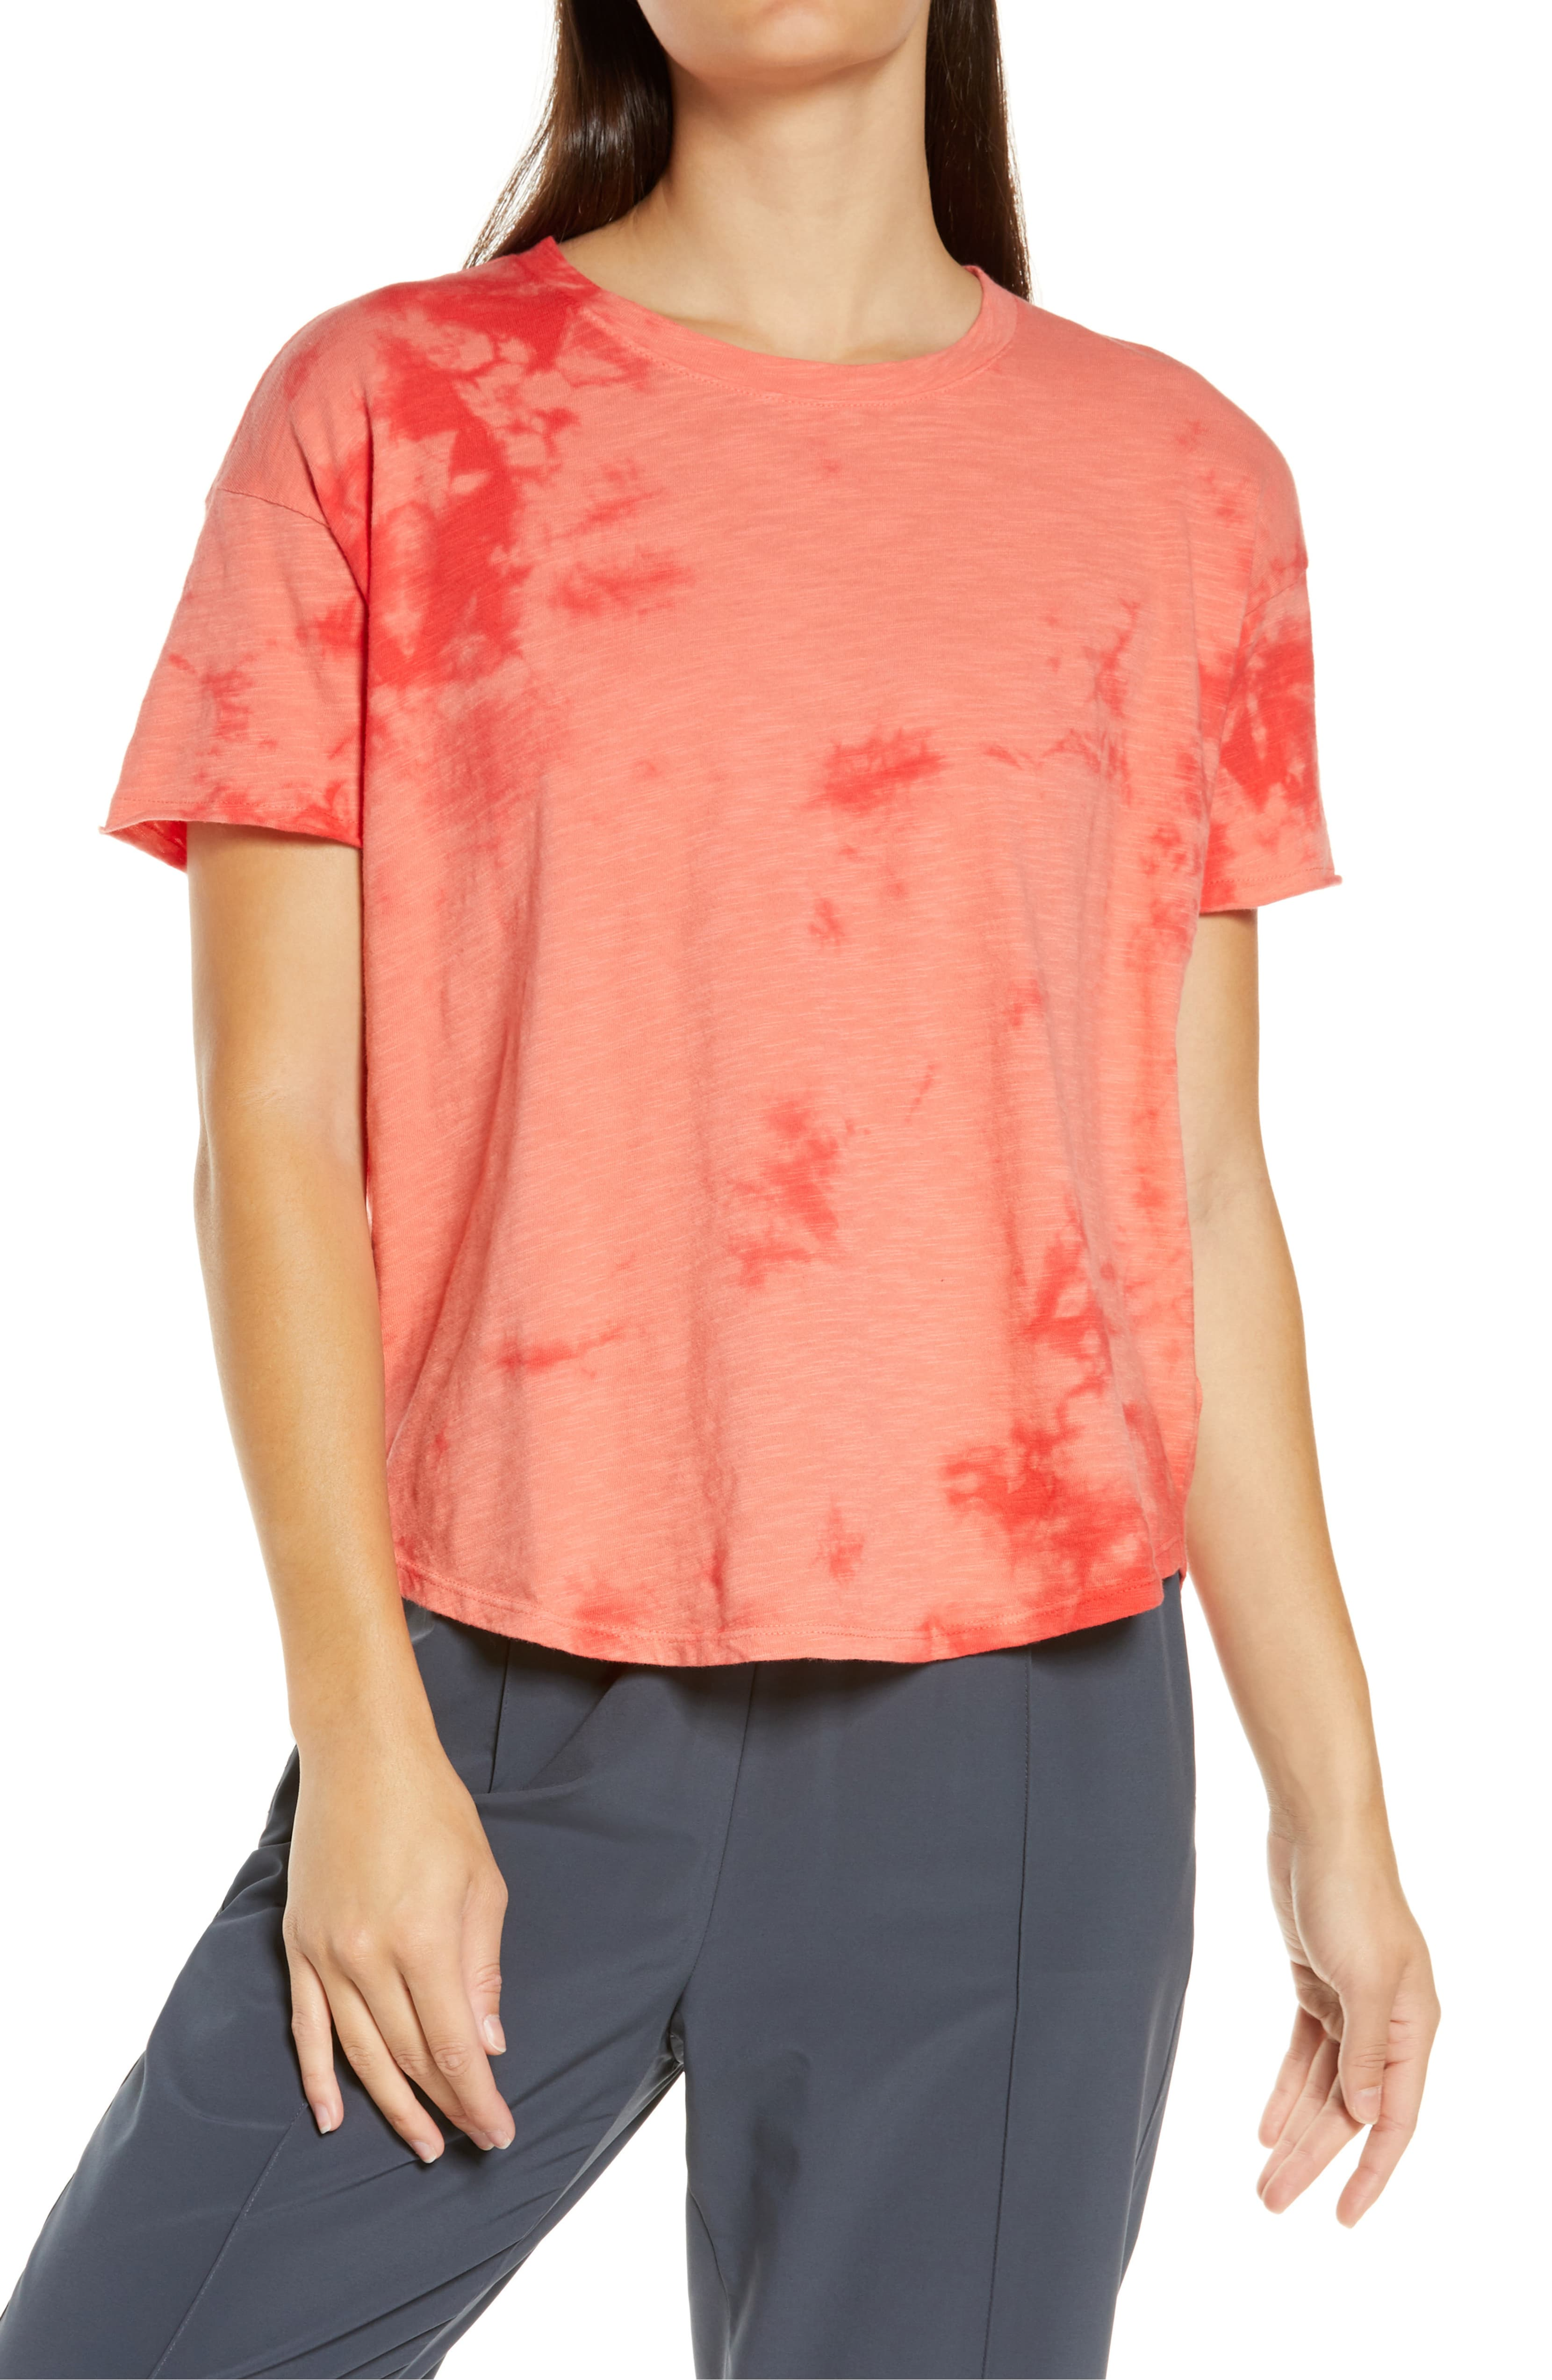 "<p>Strike your best pose in this yoga-perfect tee, made from breathable cotton with a high/low hem that covers all the right areas.{&nbsp;}<a  href=""https://www.nordstrom.com/s/zella-studio-tee/5372384?origin=keywordsearch-personalizedsort&breadcrumb=Home%2FAll%20Results&color=coral%20rose"" target=""_blank"" title=""https://www.nordstrom.com/s/zella-studio-tee/5372384?origin=keywordsearch-personalizedsort&breadcrumb=Home%2FAll%20Results&color=coral%20rose"">Shop it</a>, $39.{&nbsp;} (Image: Nordstrom){&nbsp;}</p>"